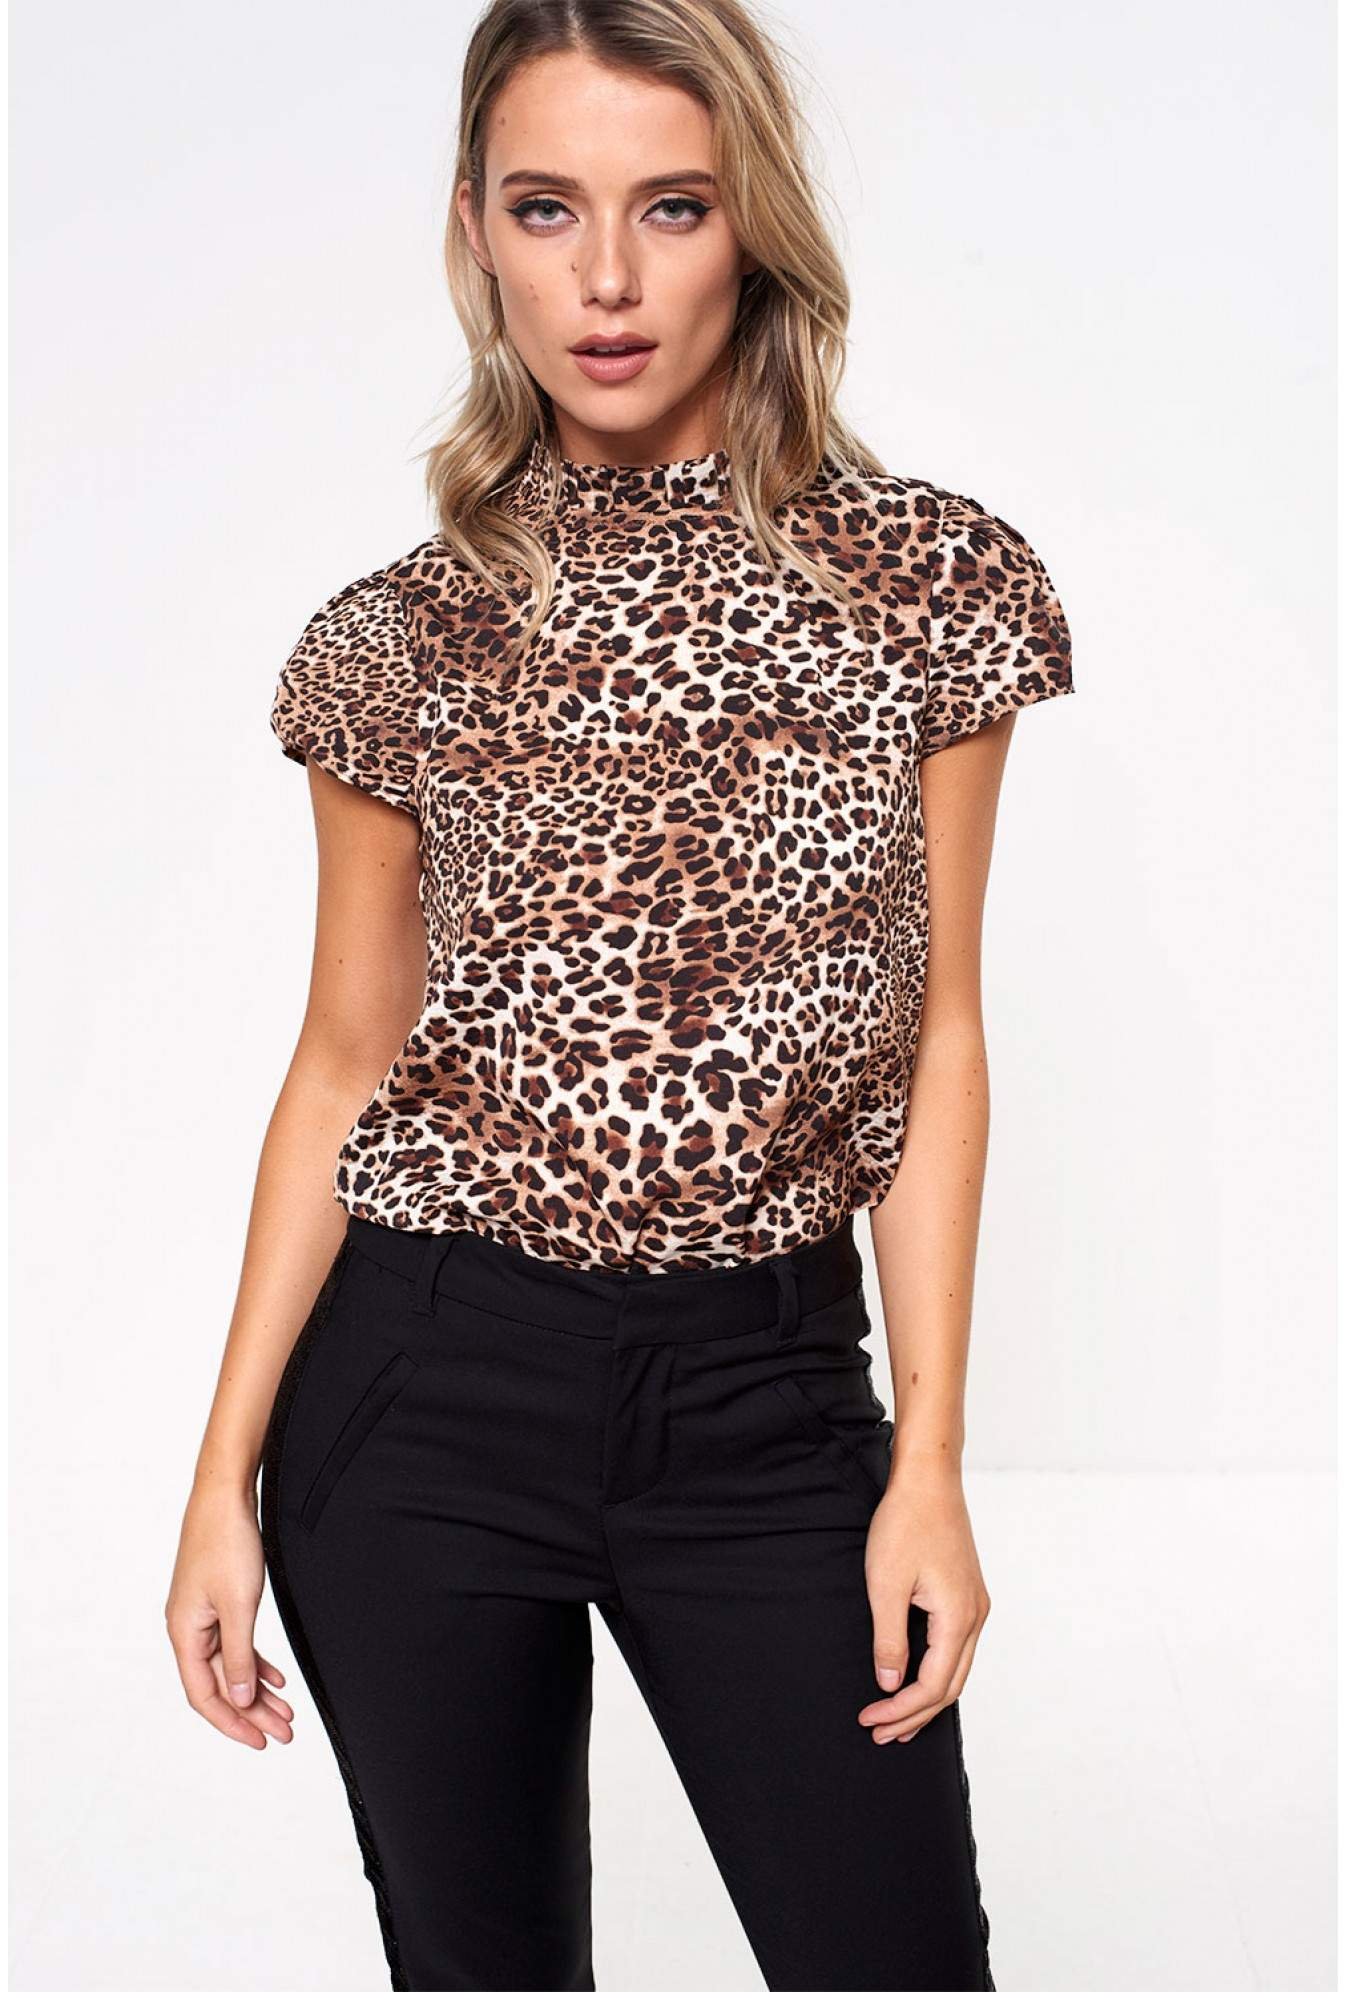 43a9edb3c63b4e Marc Angelo Millie Top with Frill Neck in Brown Animal Print | iCLOTHING